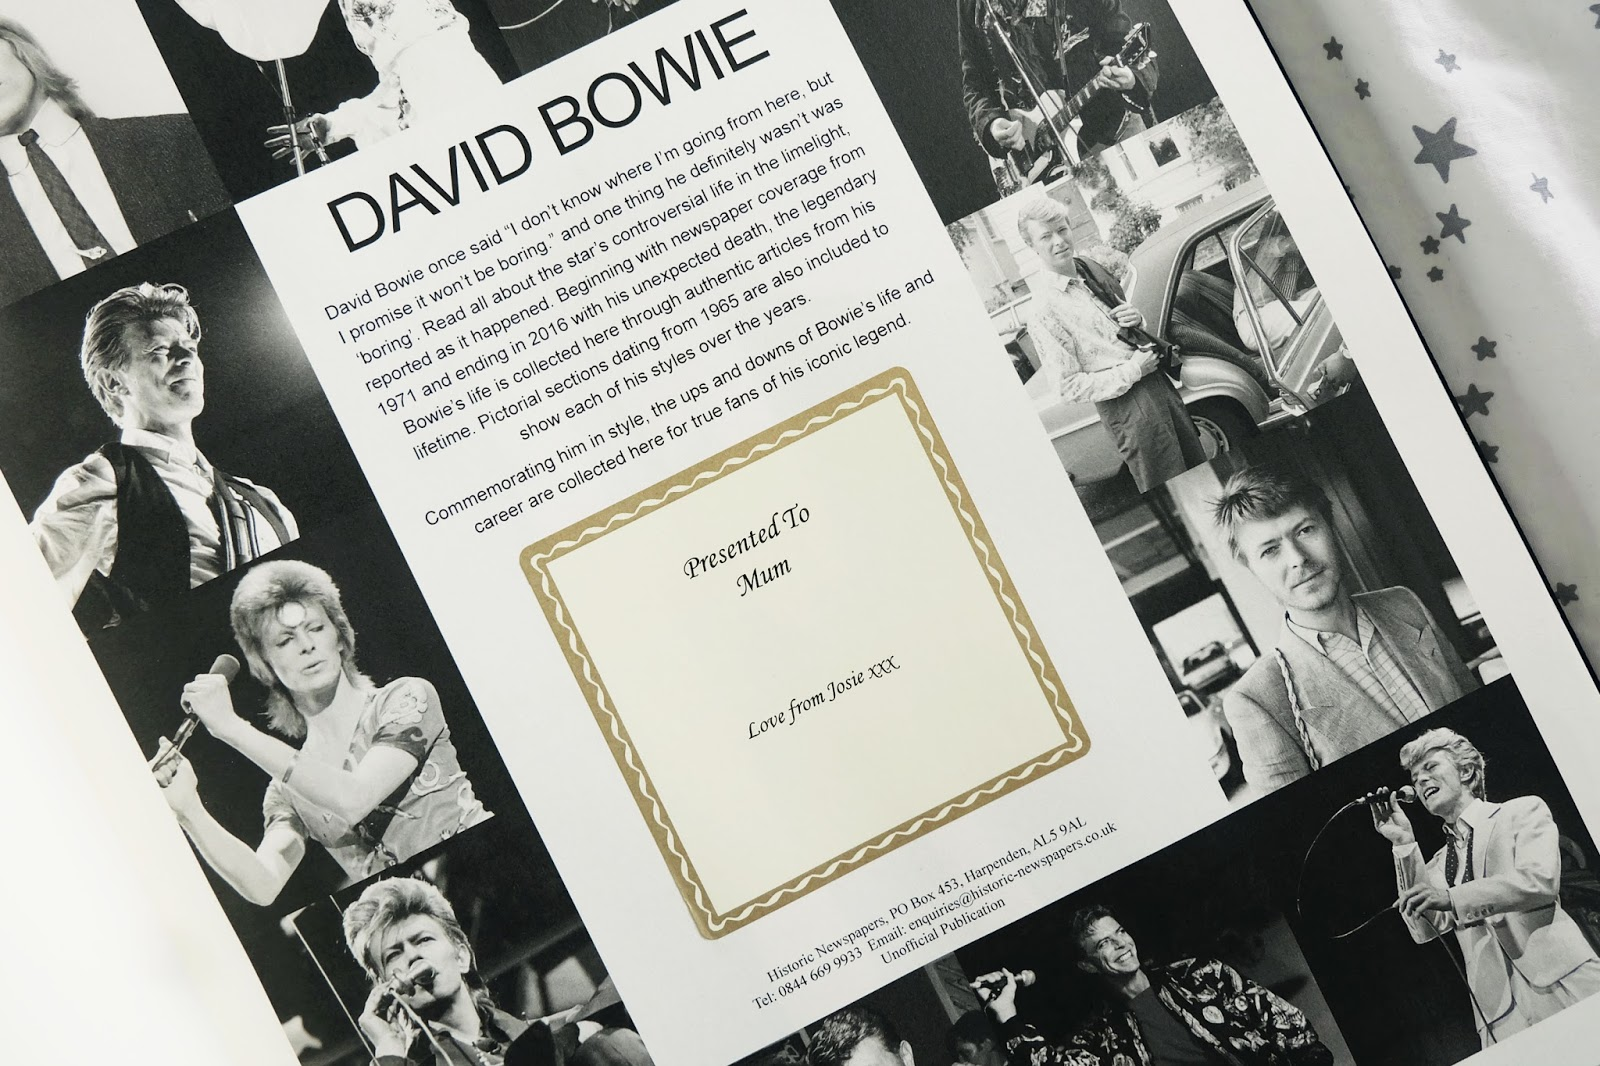 www.ijustloveit.com david bowie newspaper book review, david bowie newspaper book review, i just love it bowie book review, david bowie book